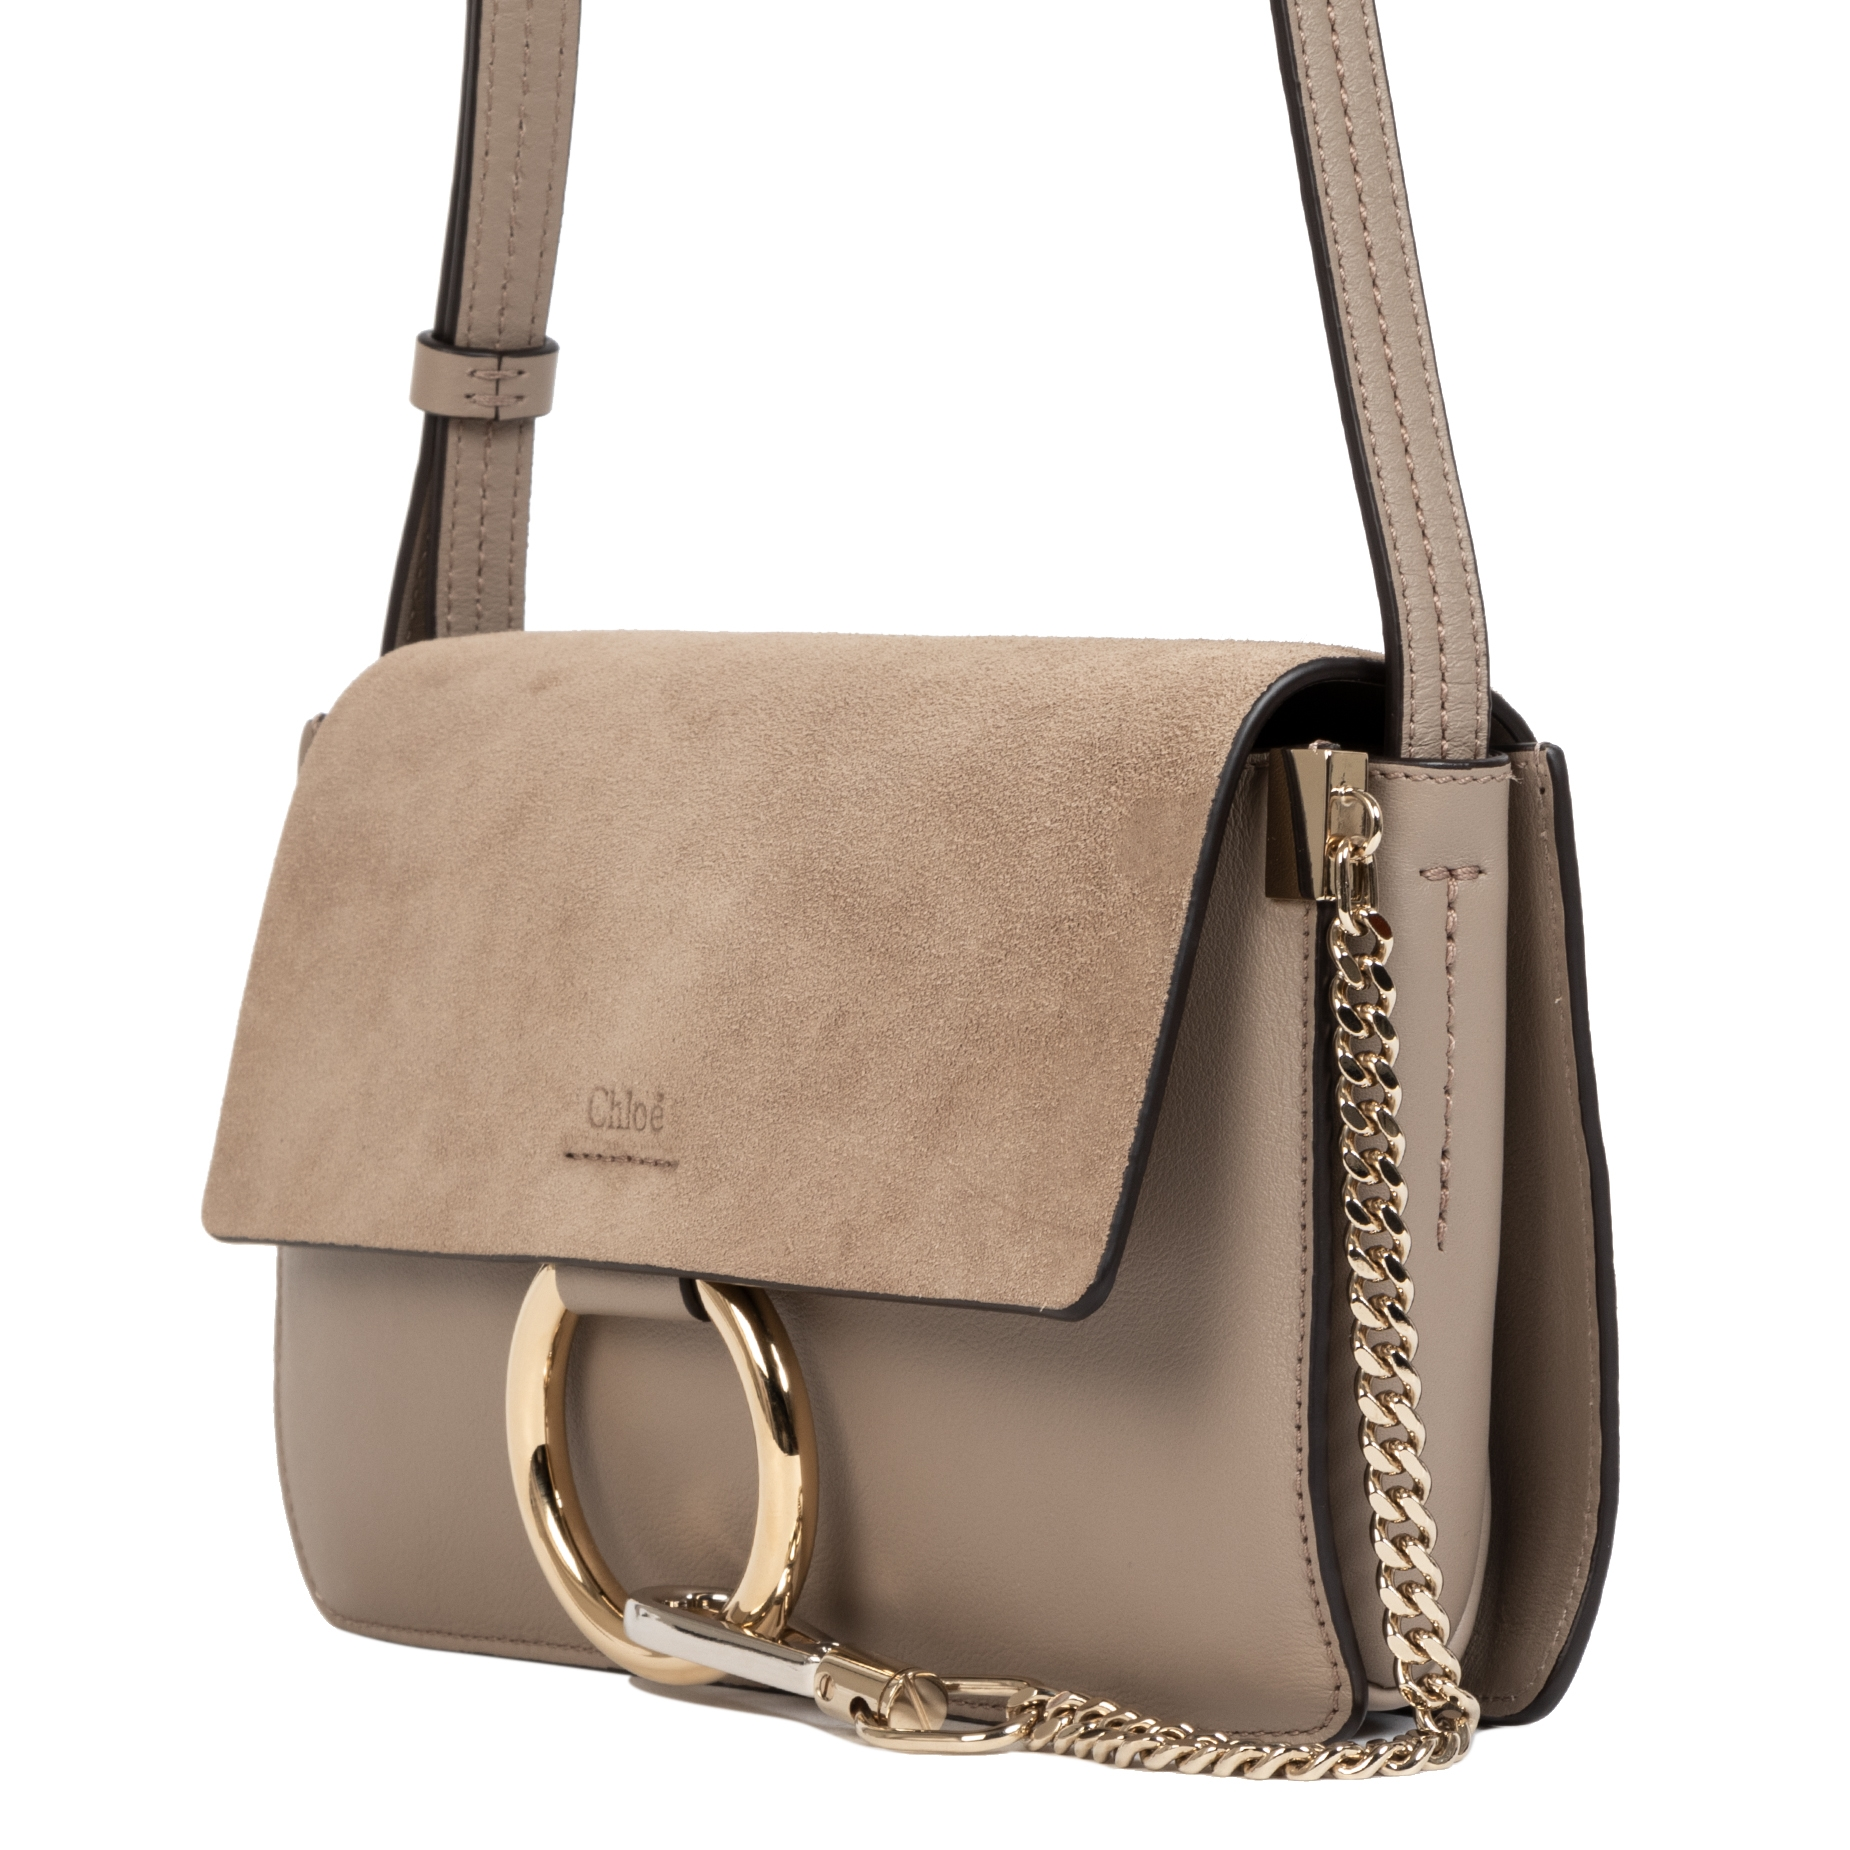 Chloe Faye Motty Grey Small Suede Shoulder Bag pour le meilleur prix chez Labellov à Anvers